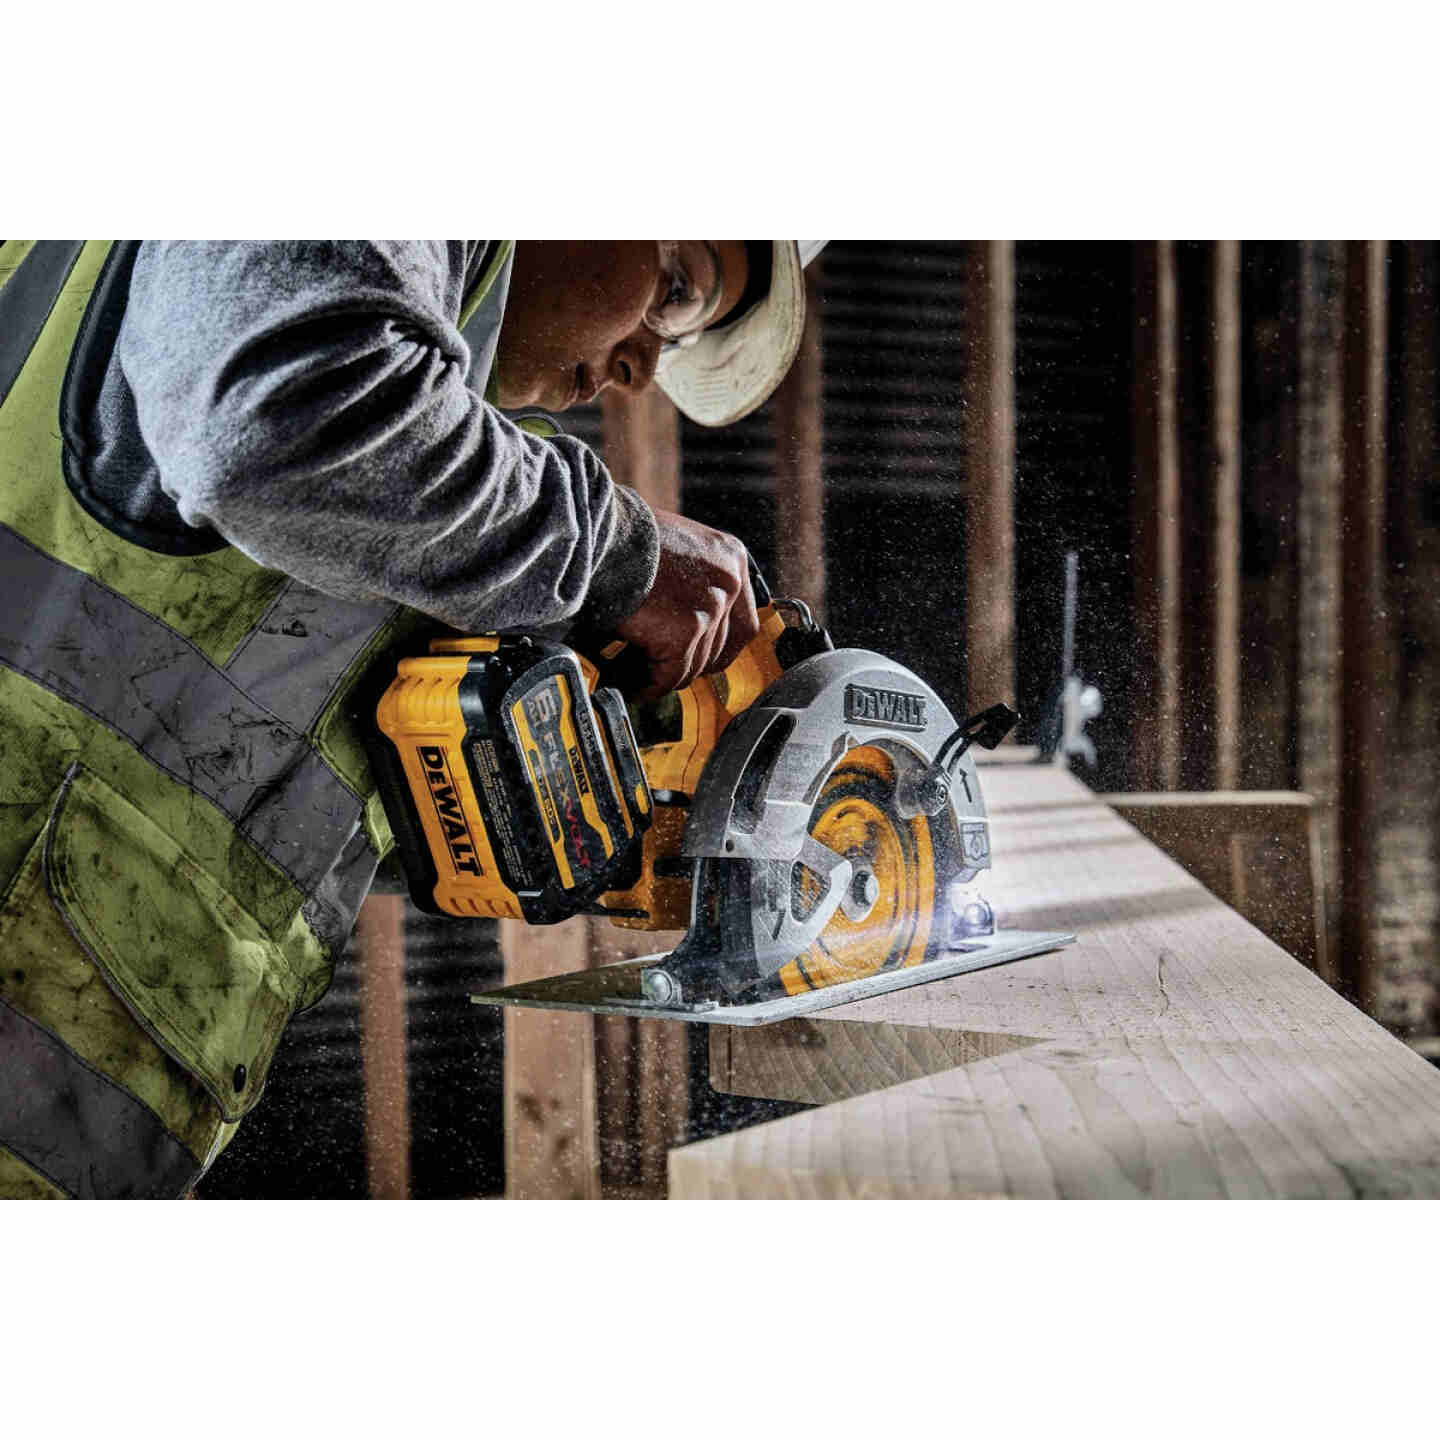 DeWalt 20 Volt MAX 7-1/4 In. Brushless Cordless Circular Saw with Flexvolt Advantage (Bare Tool) Image 3